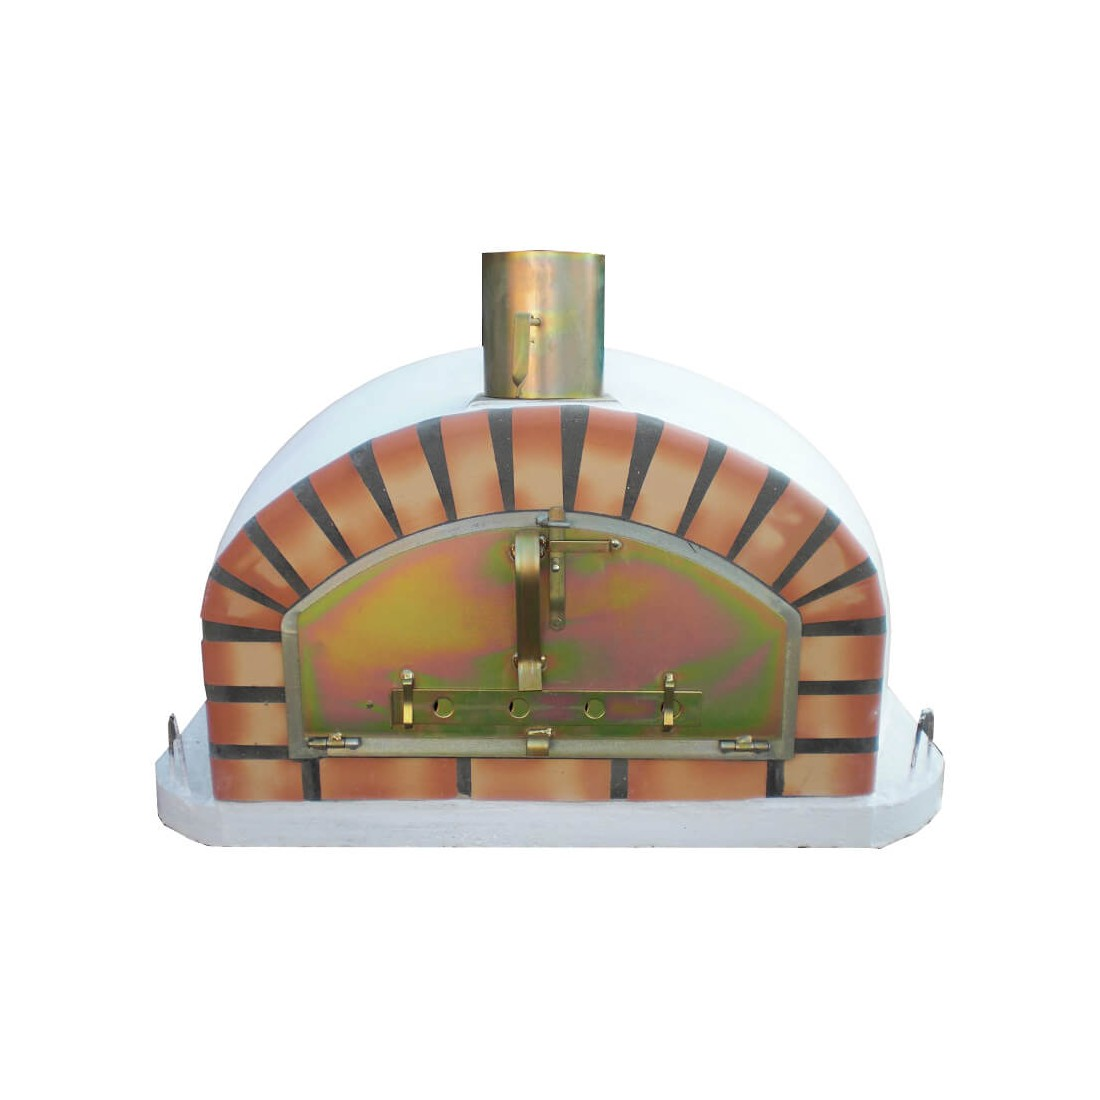 Outdoor Italian Brick Wood Fired Pizza Oven 100cm In